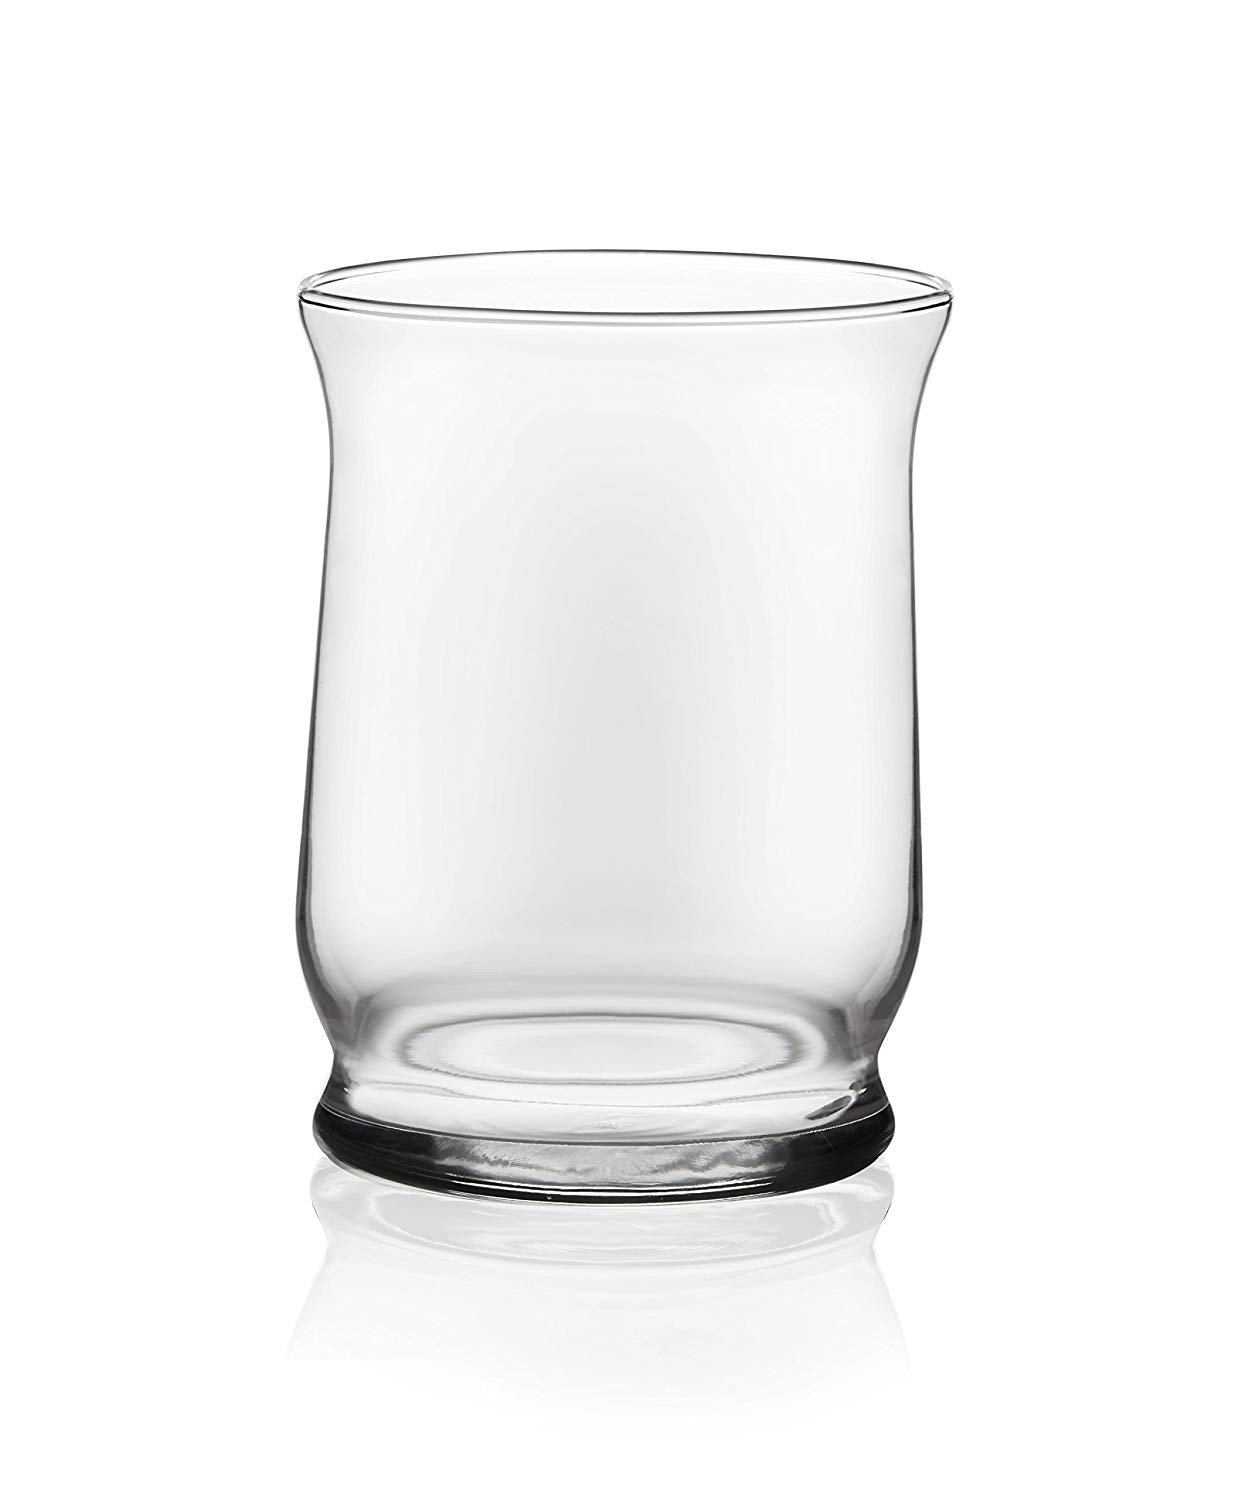 libbey glass tower vase of amazon com libbey hurricane vase adorn 4 pc 6 in glass hurricane with regard to amazon com libbey hurricane vase adorn 4 pc 6 in glass hurricane vase set home kitchen